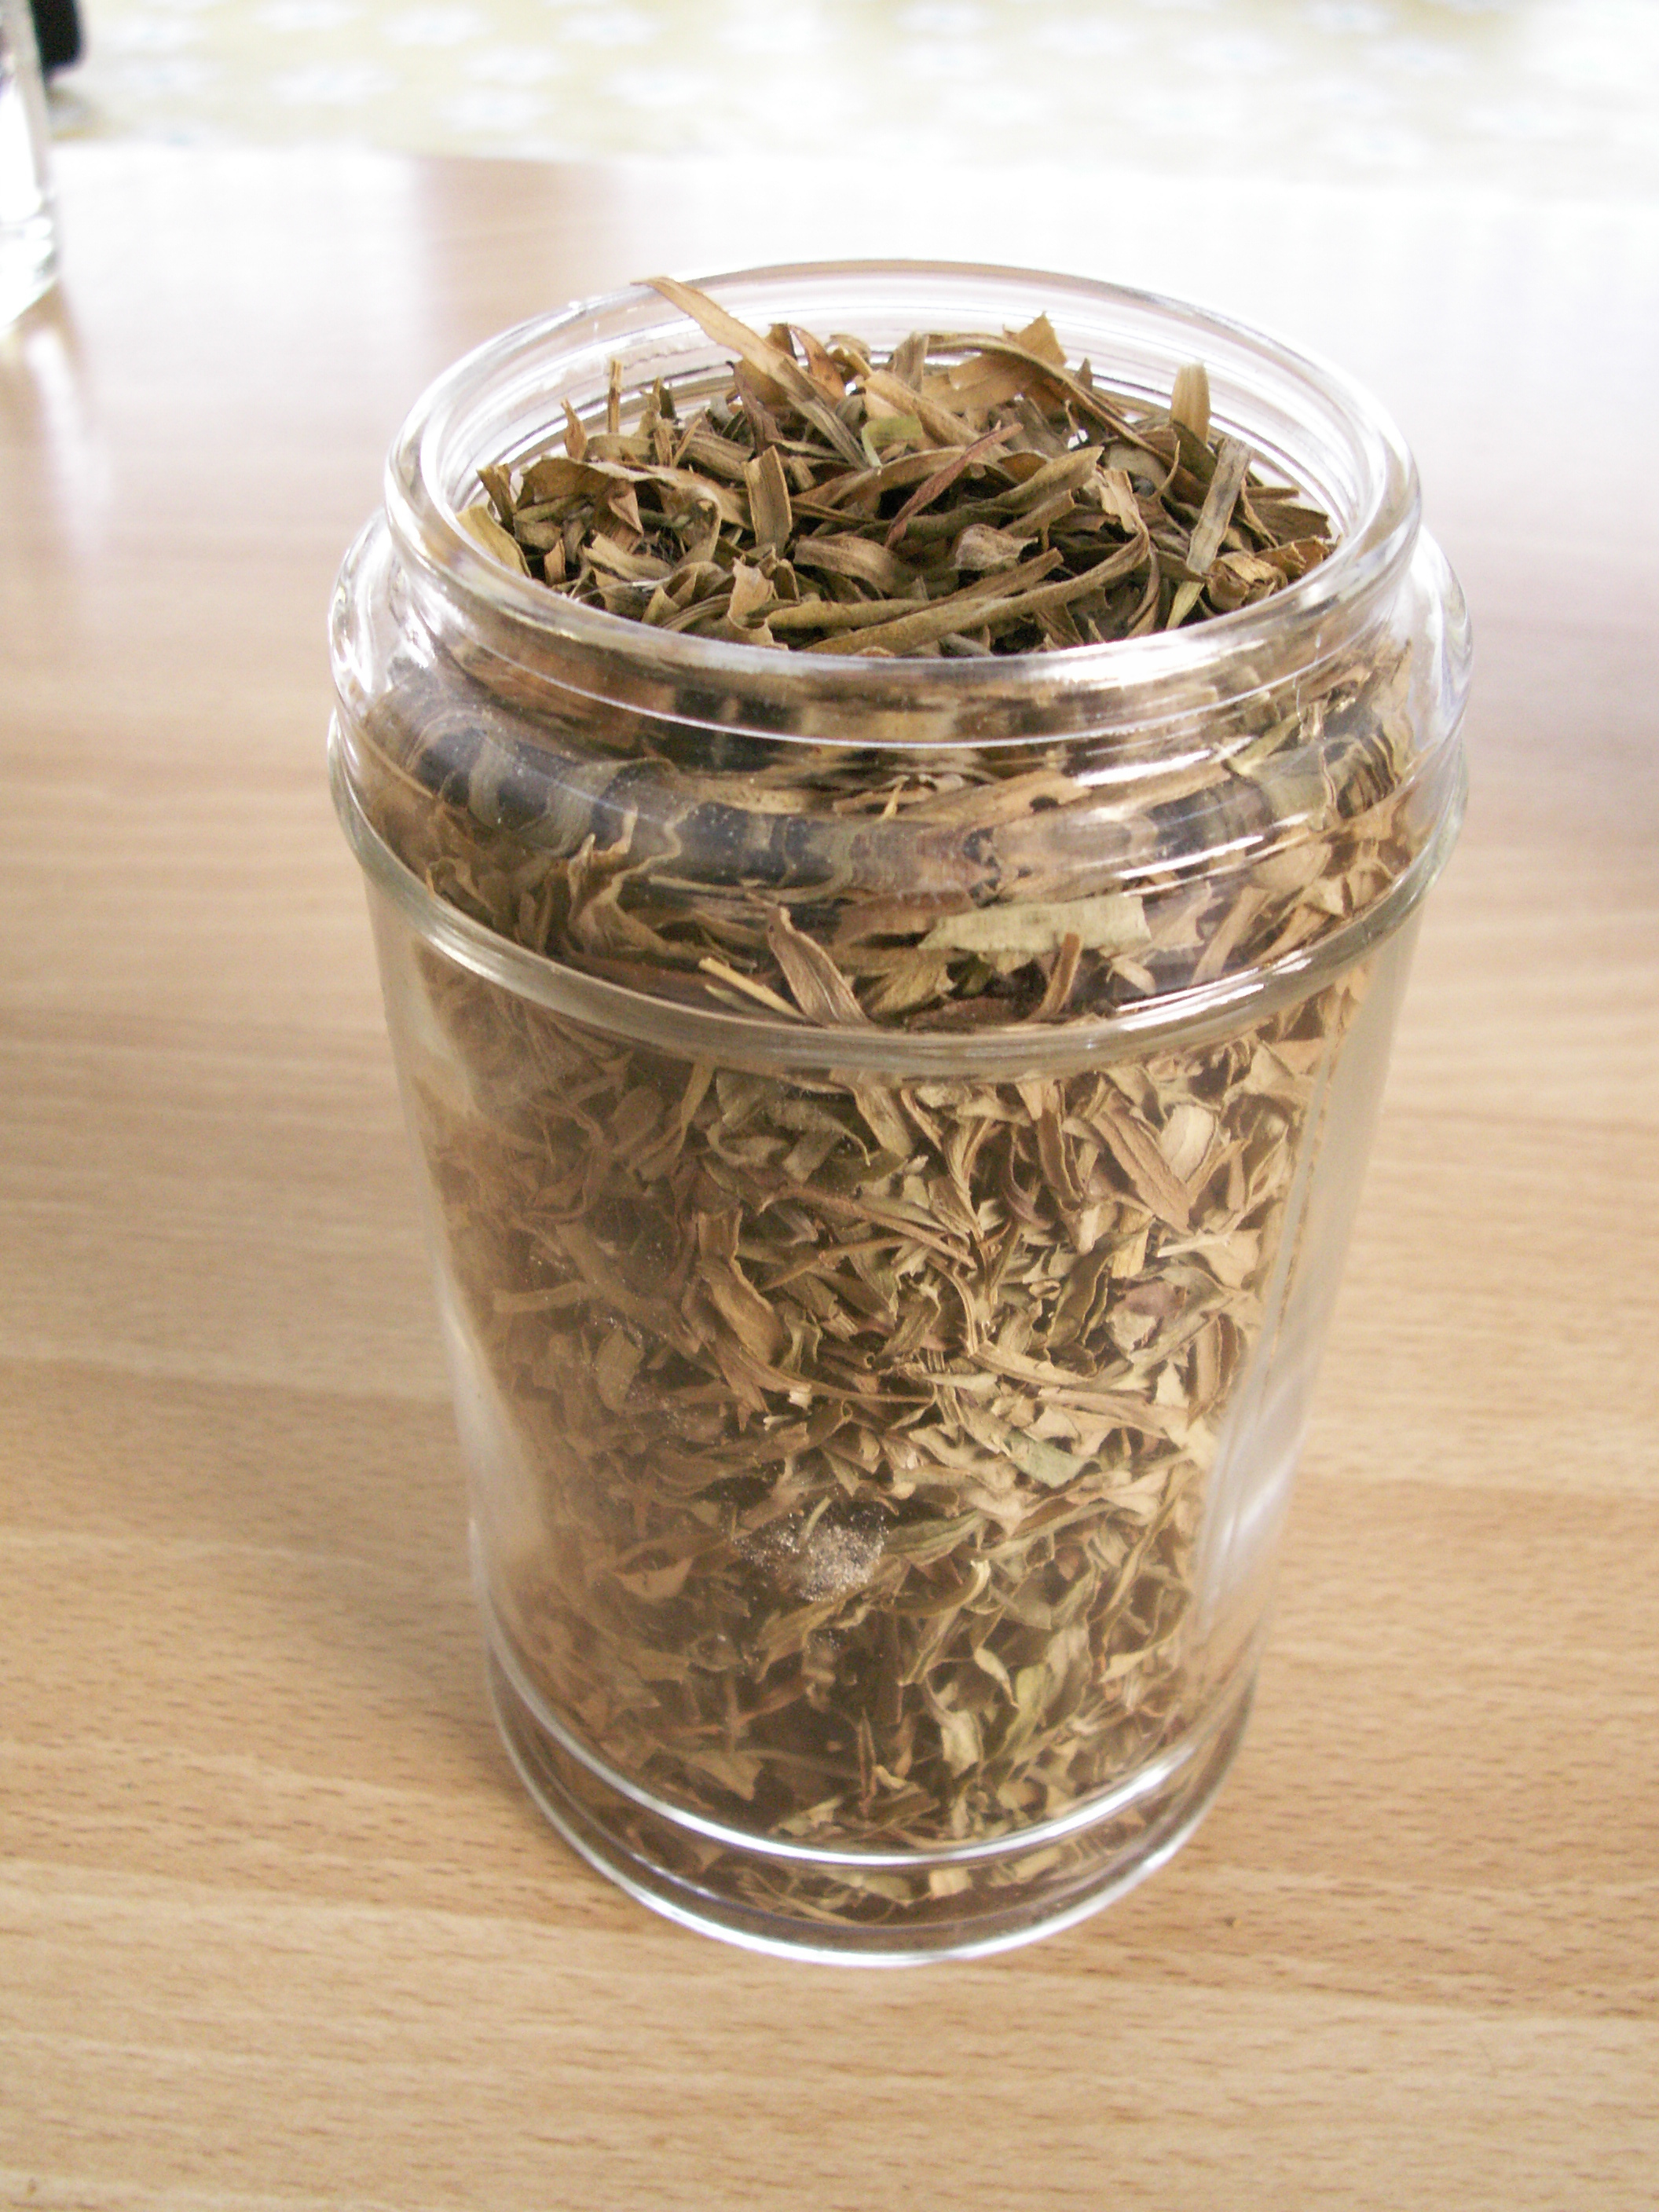 Image of French Tarragon